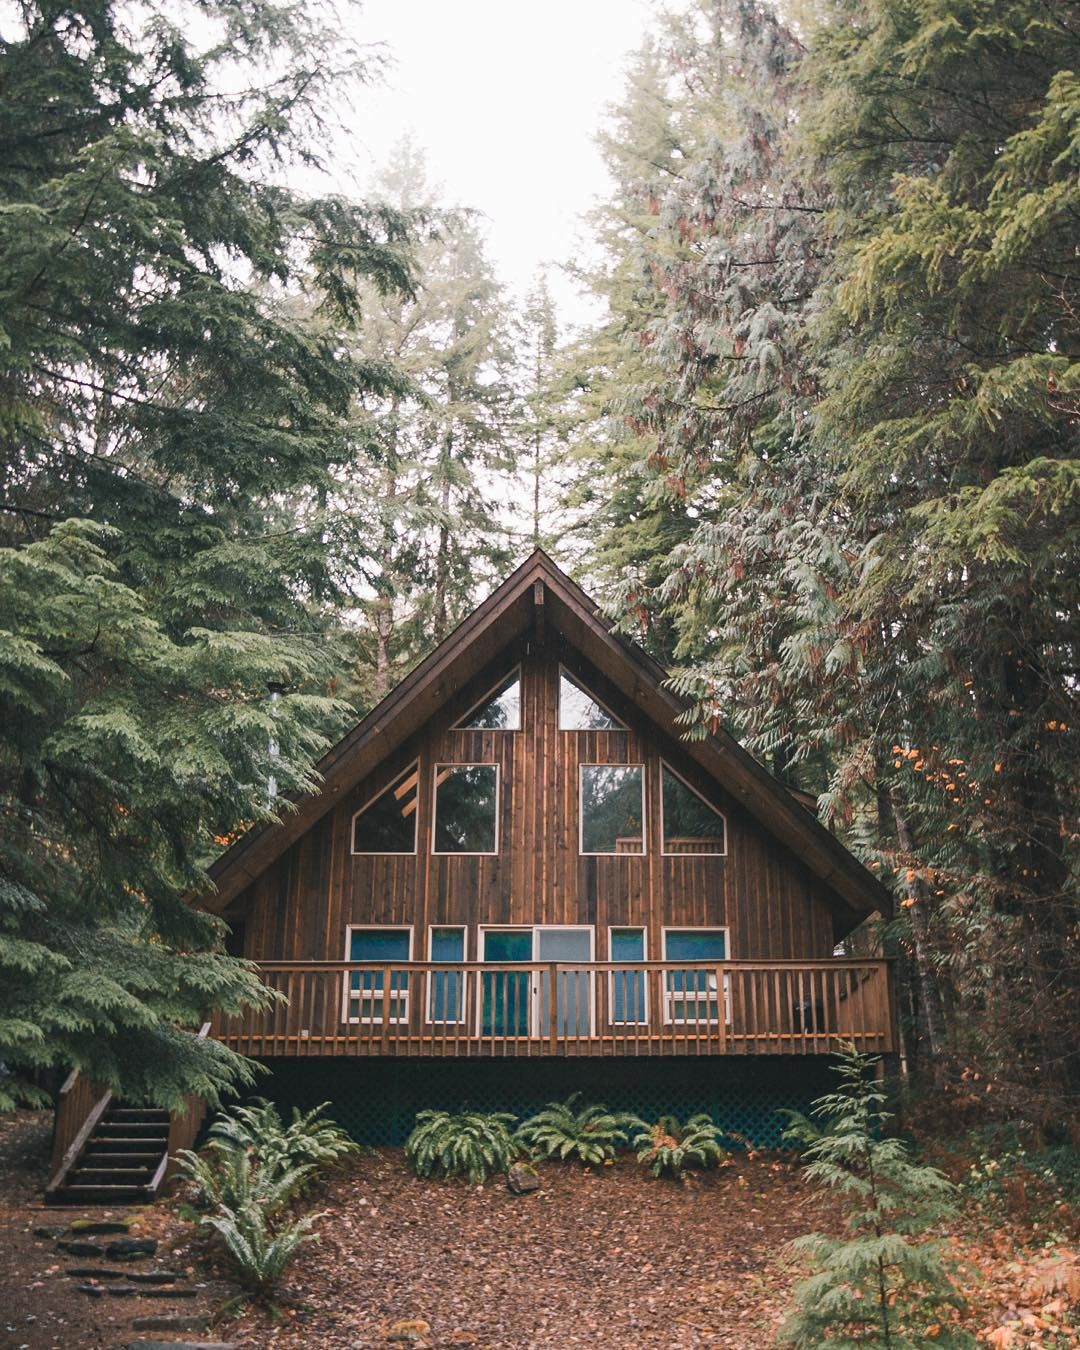 Wooden house like from the fairy tale. https//www.quick